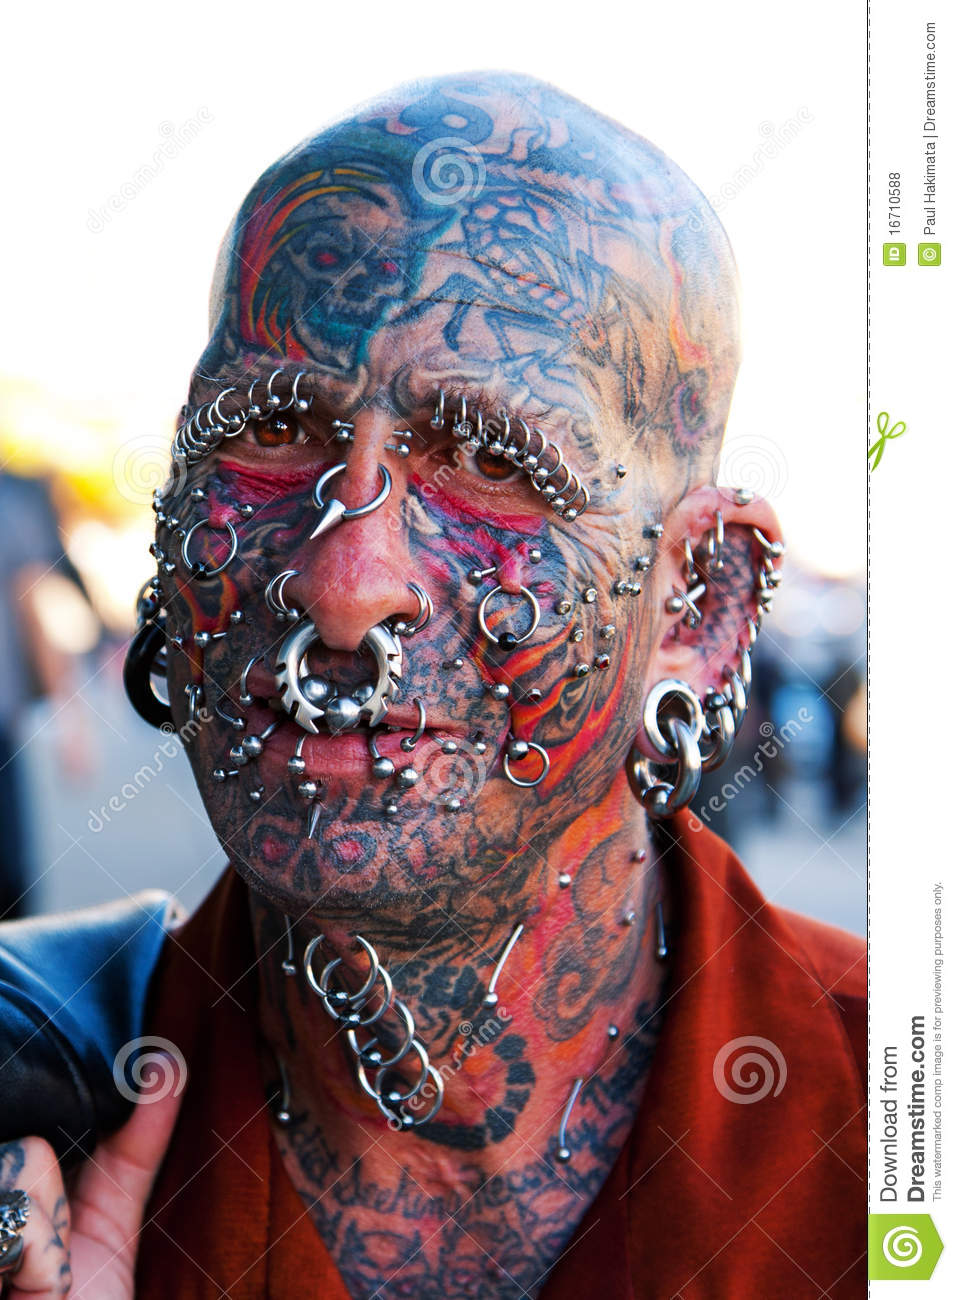 If You Are Like This Guy, You Are Not Helping...-161894d1449001805-why-people-piercing-tattooing-their-dogs-face-tattoos-piercings-16710588.jpg